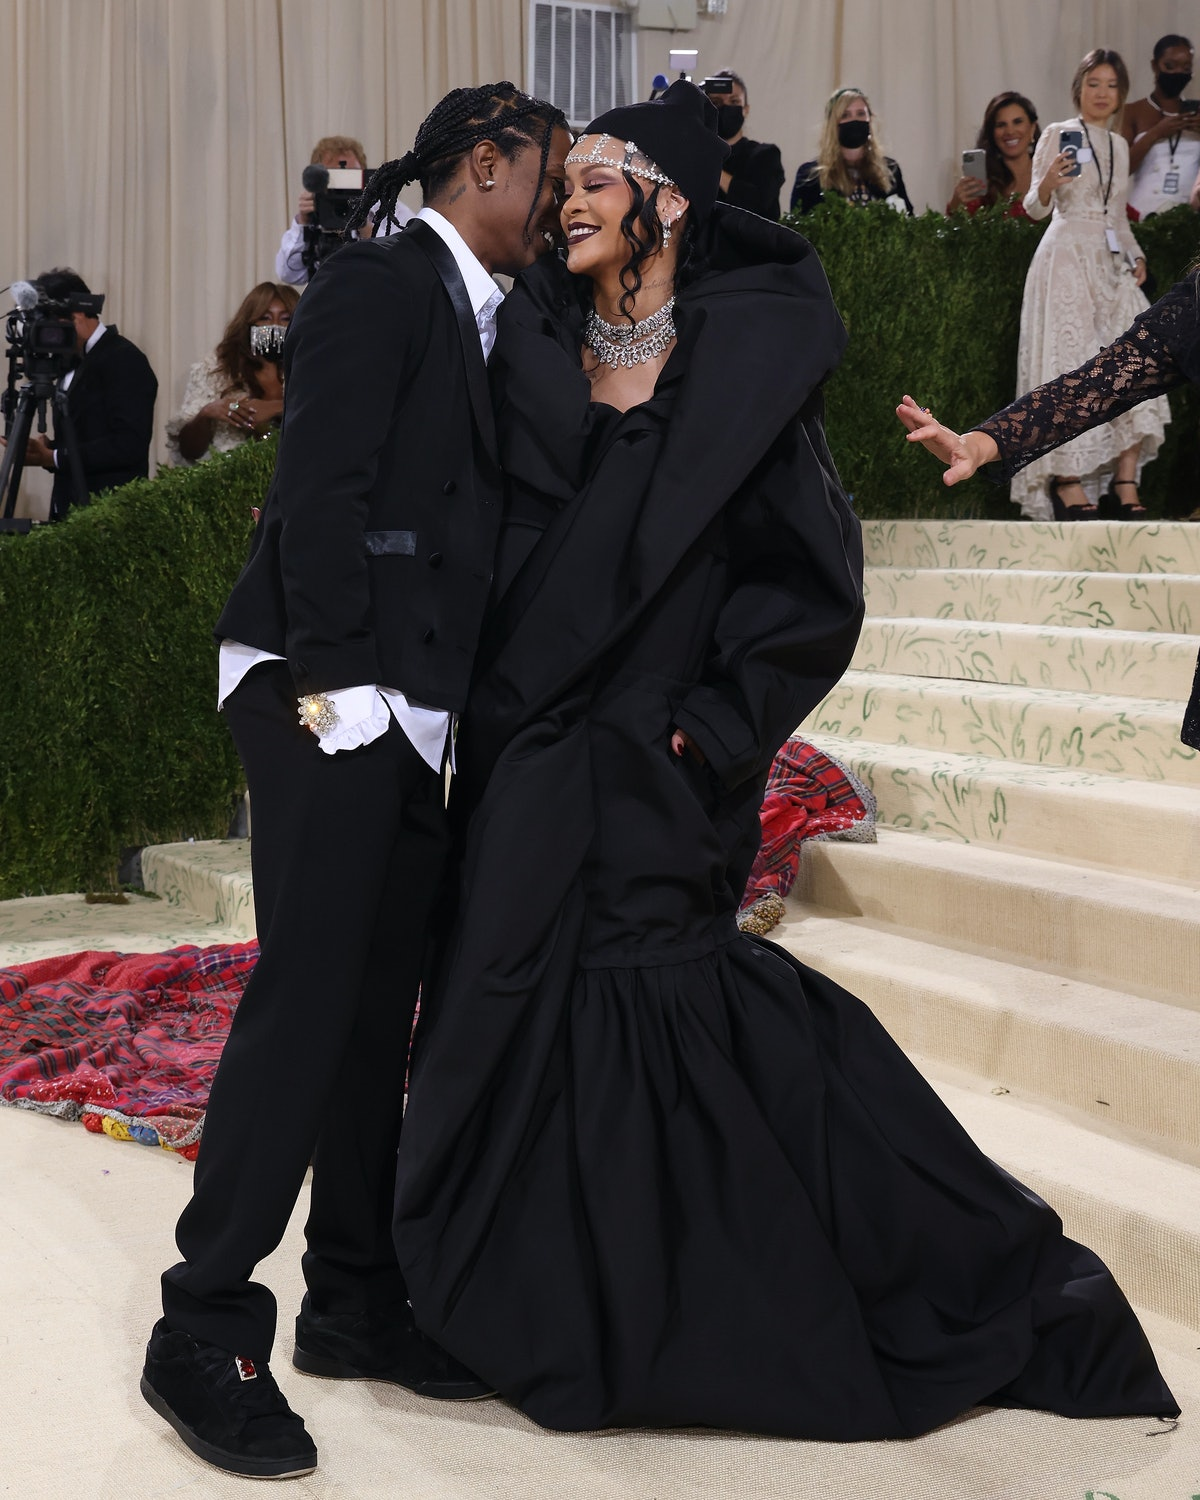 Rihanna and ASAP Rocky's Met Gala body language shows they're super in love.